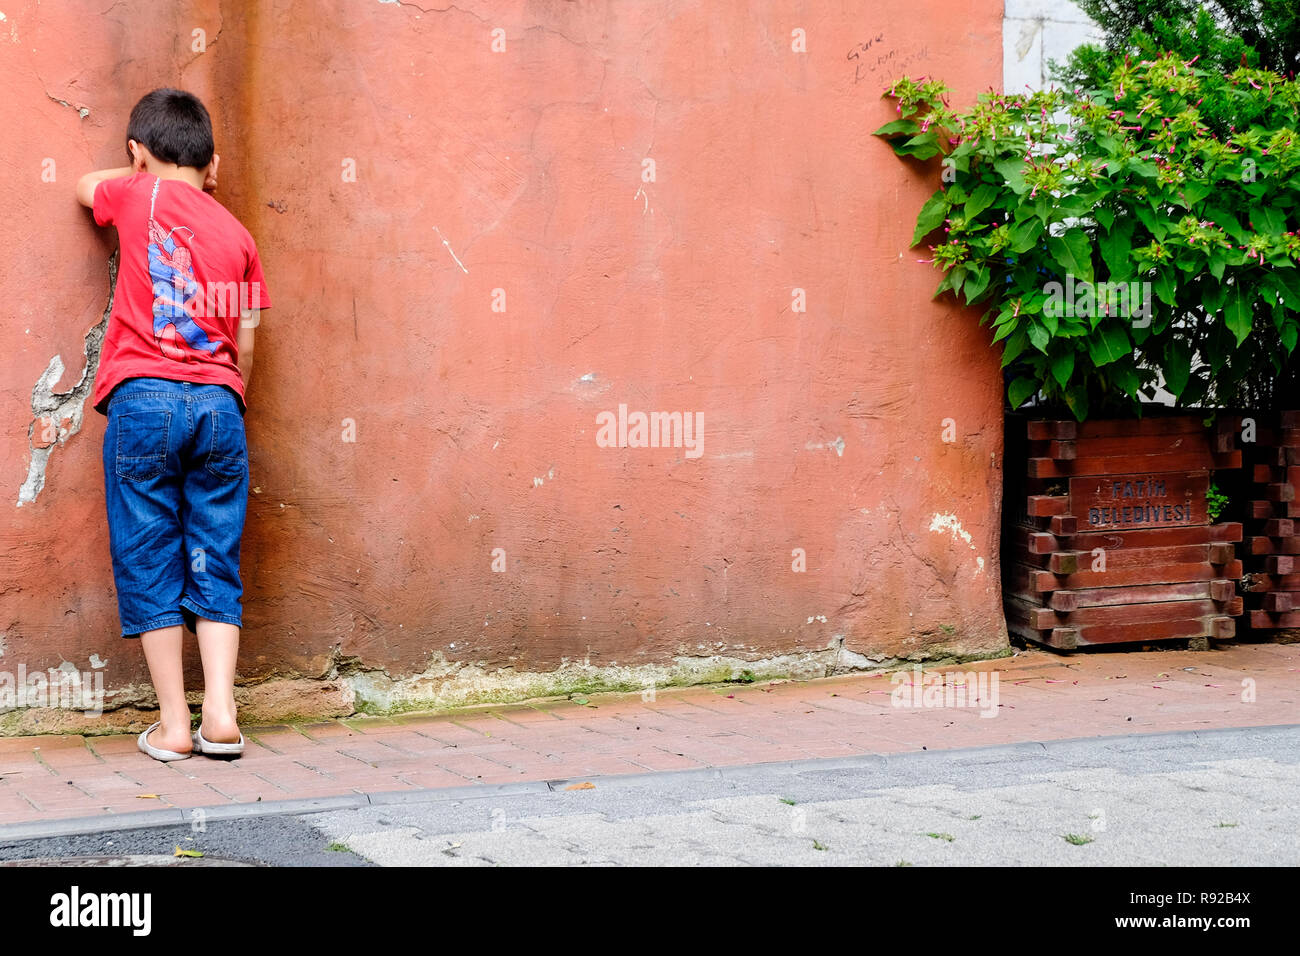 Young boy playing hide and seek in the street - Stock Image